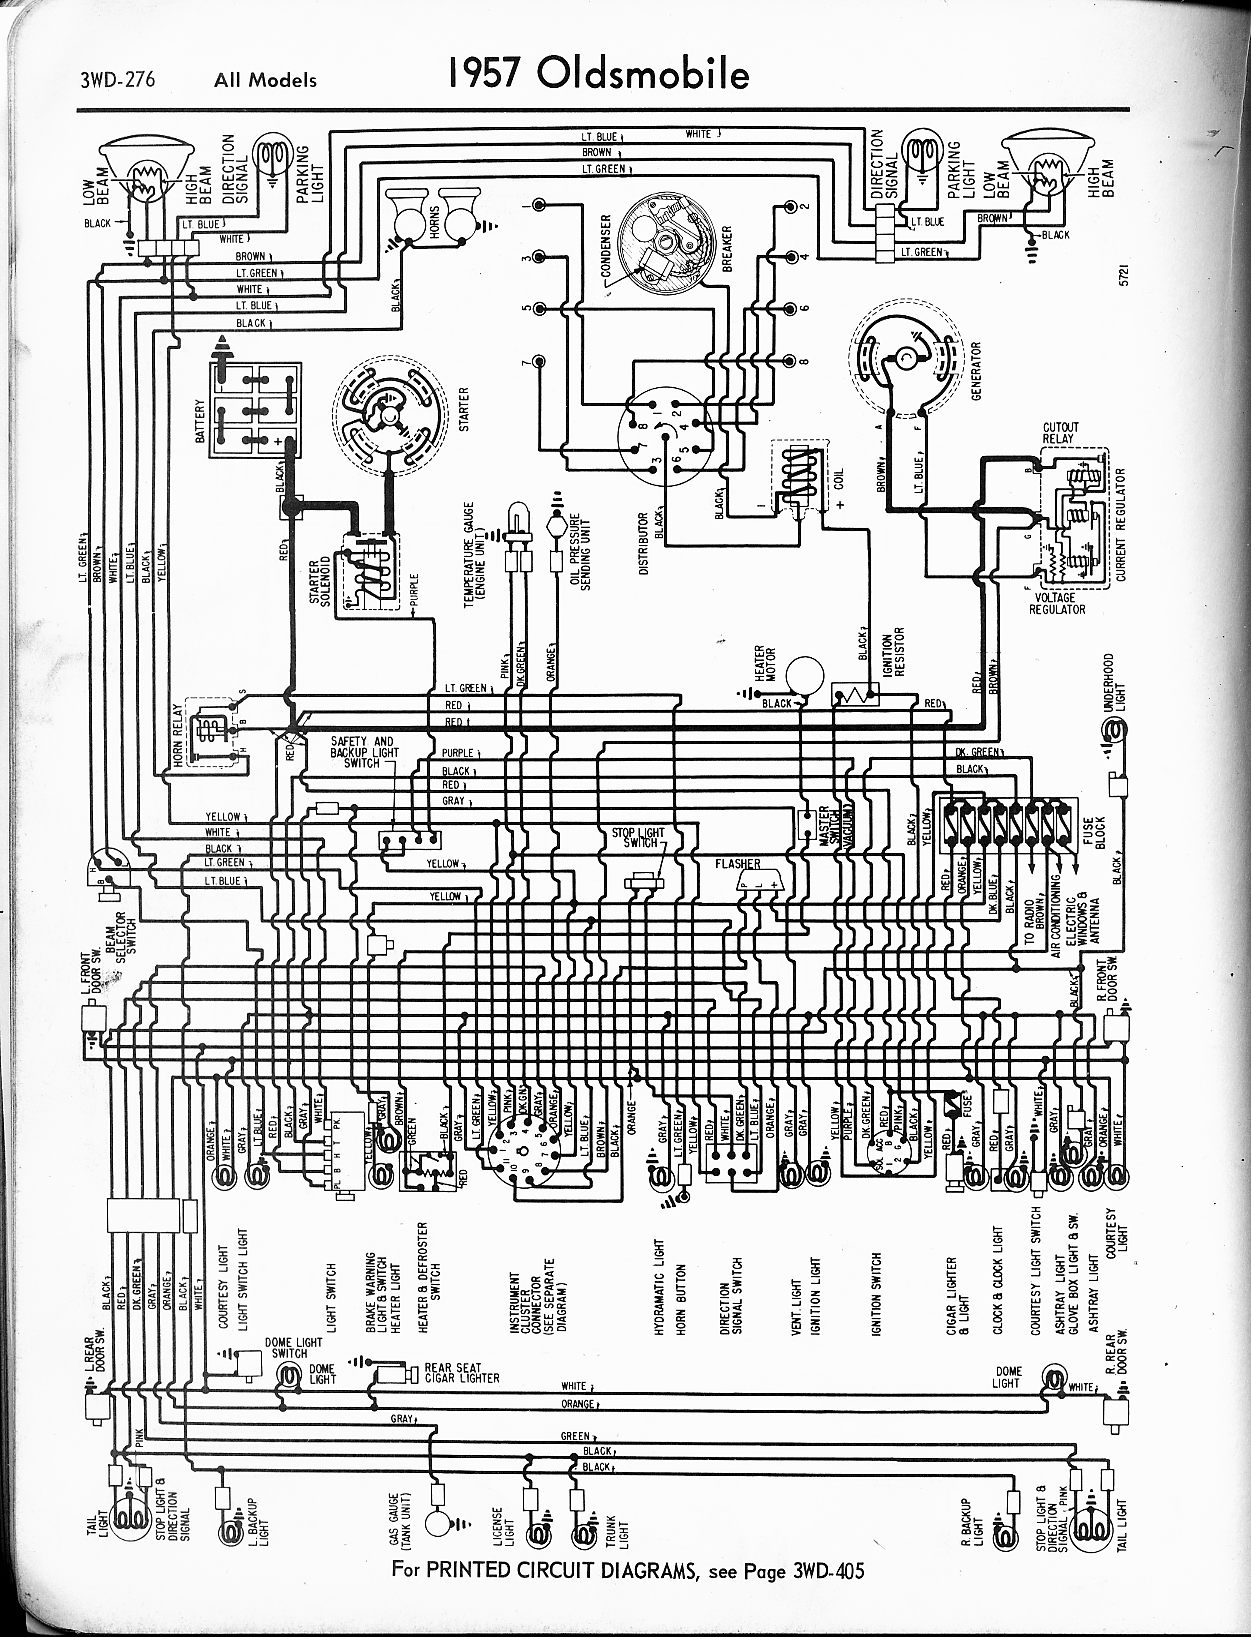 1972 oldsmobile cutlass supreme wiring diagrams 94 oldsmobile cutlass supreme wiring diagram #9